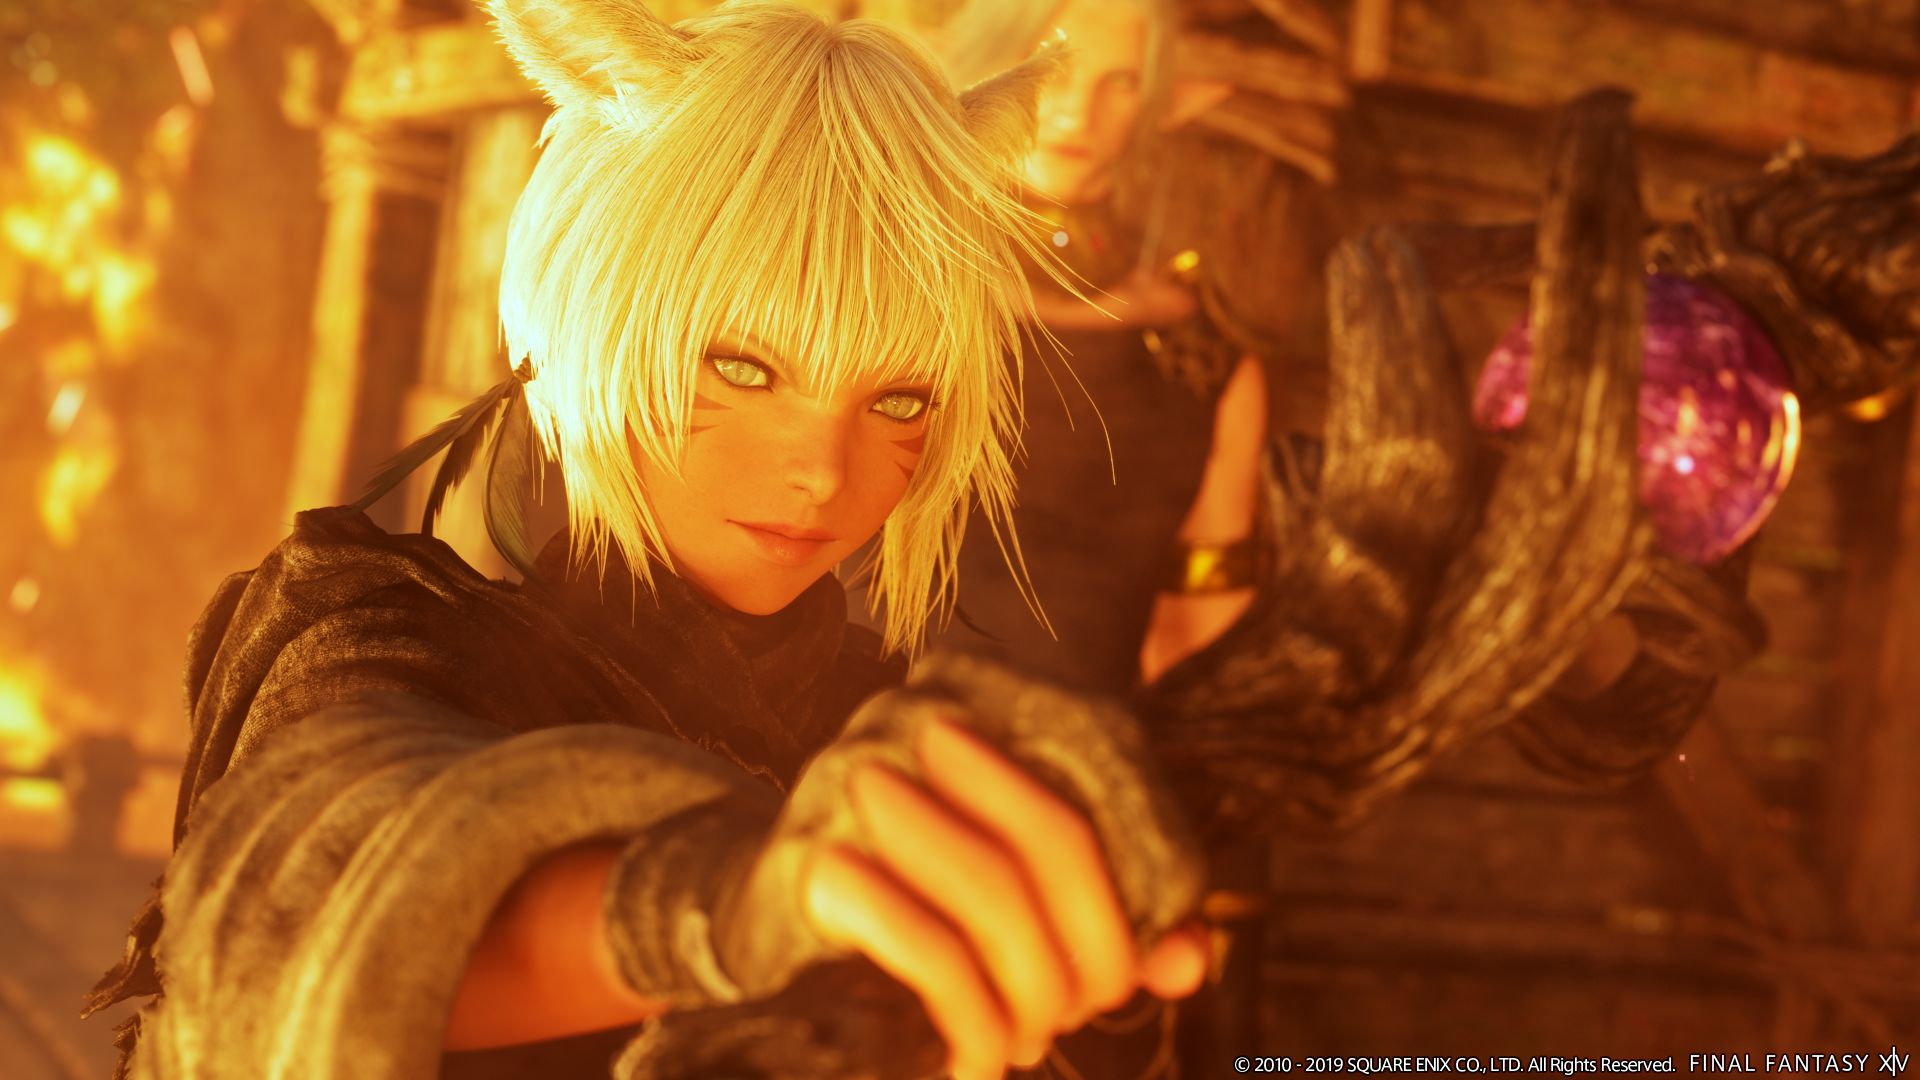 Final Fantasy XIV Getting Free Login Campaign in Preparation for